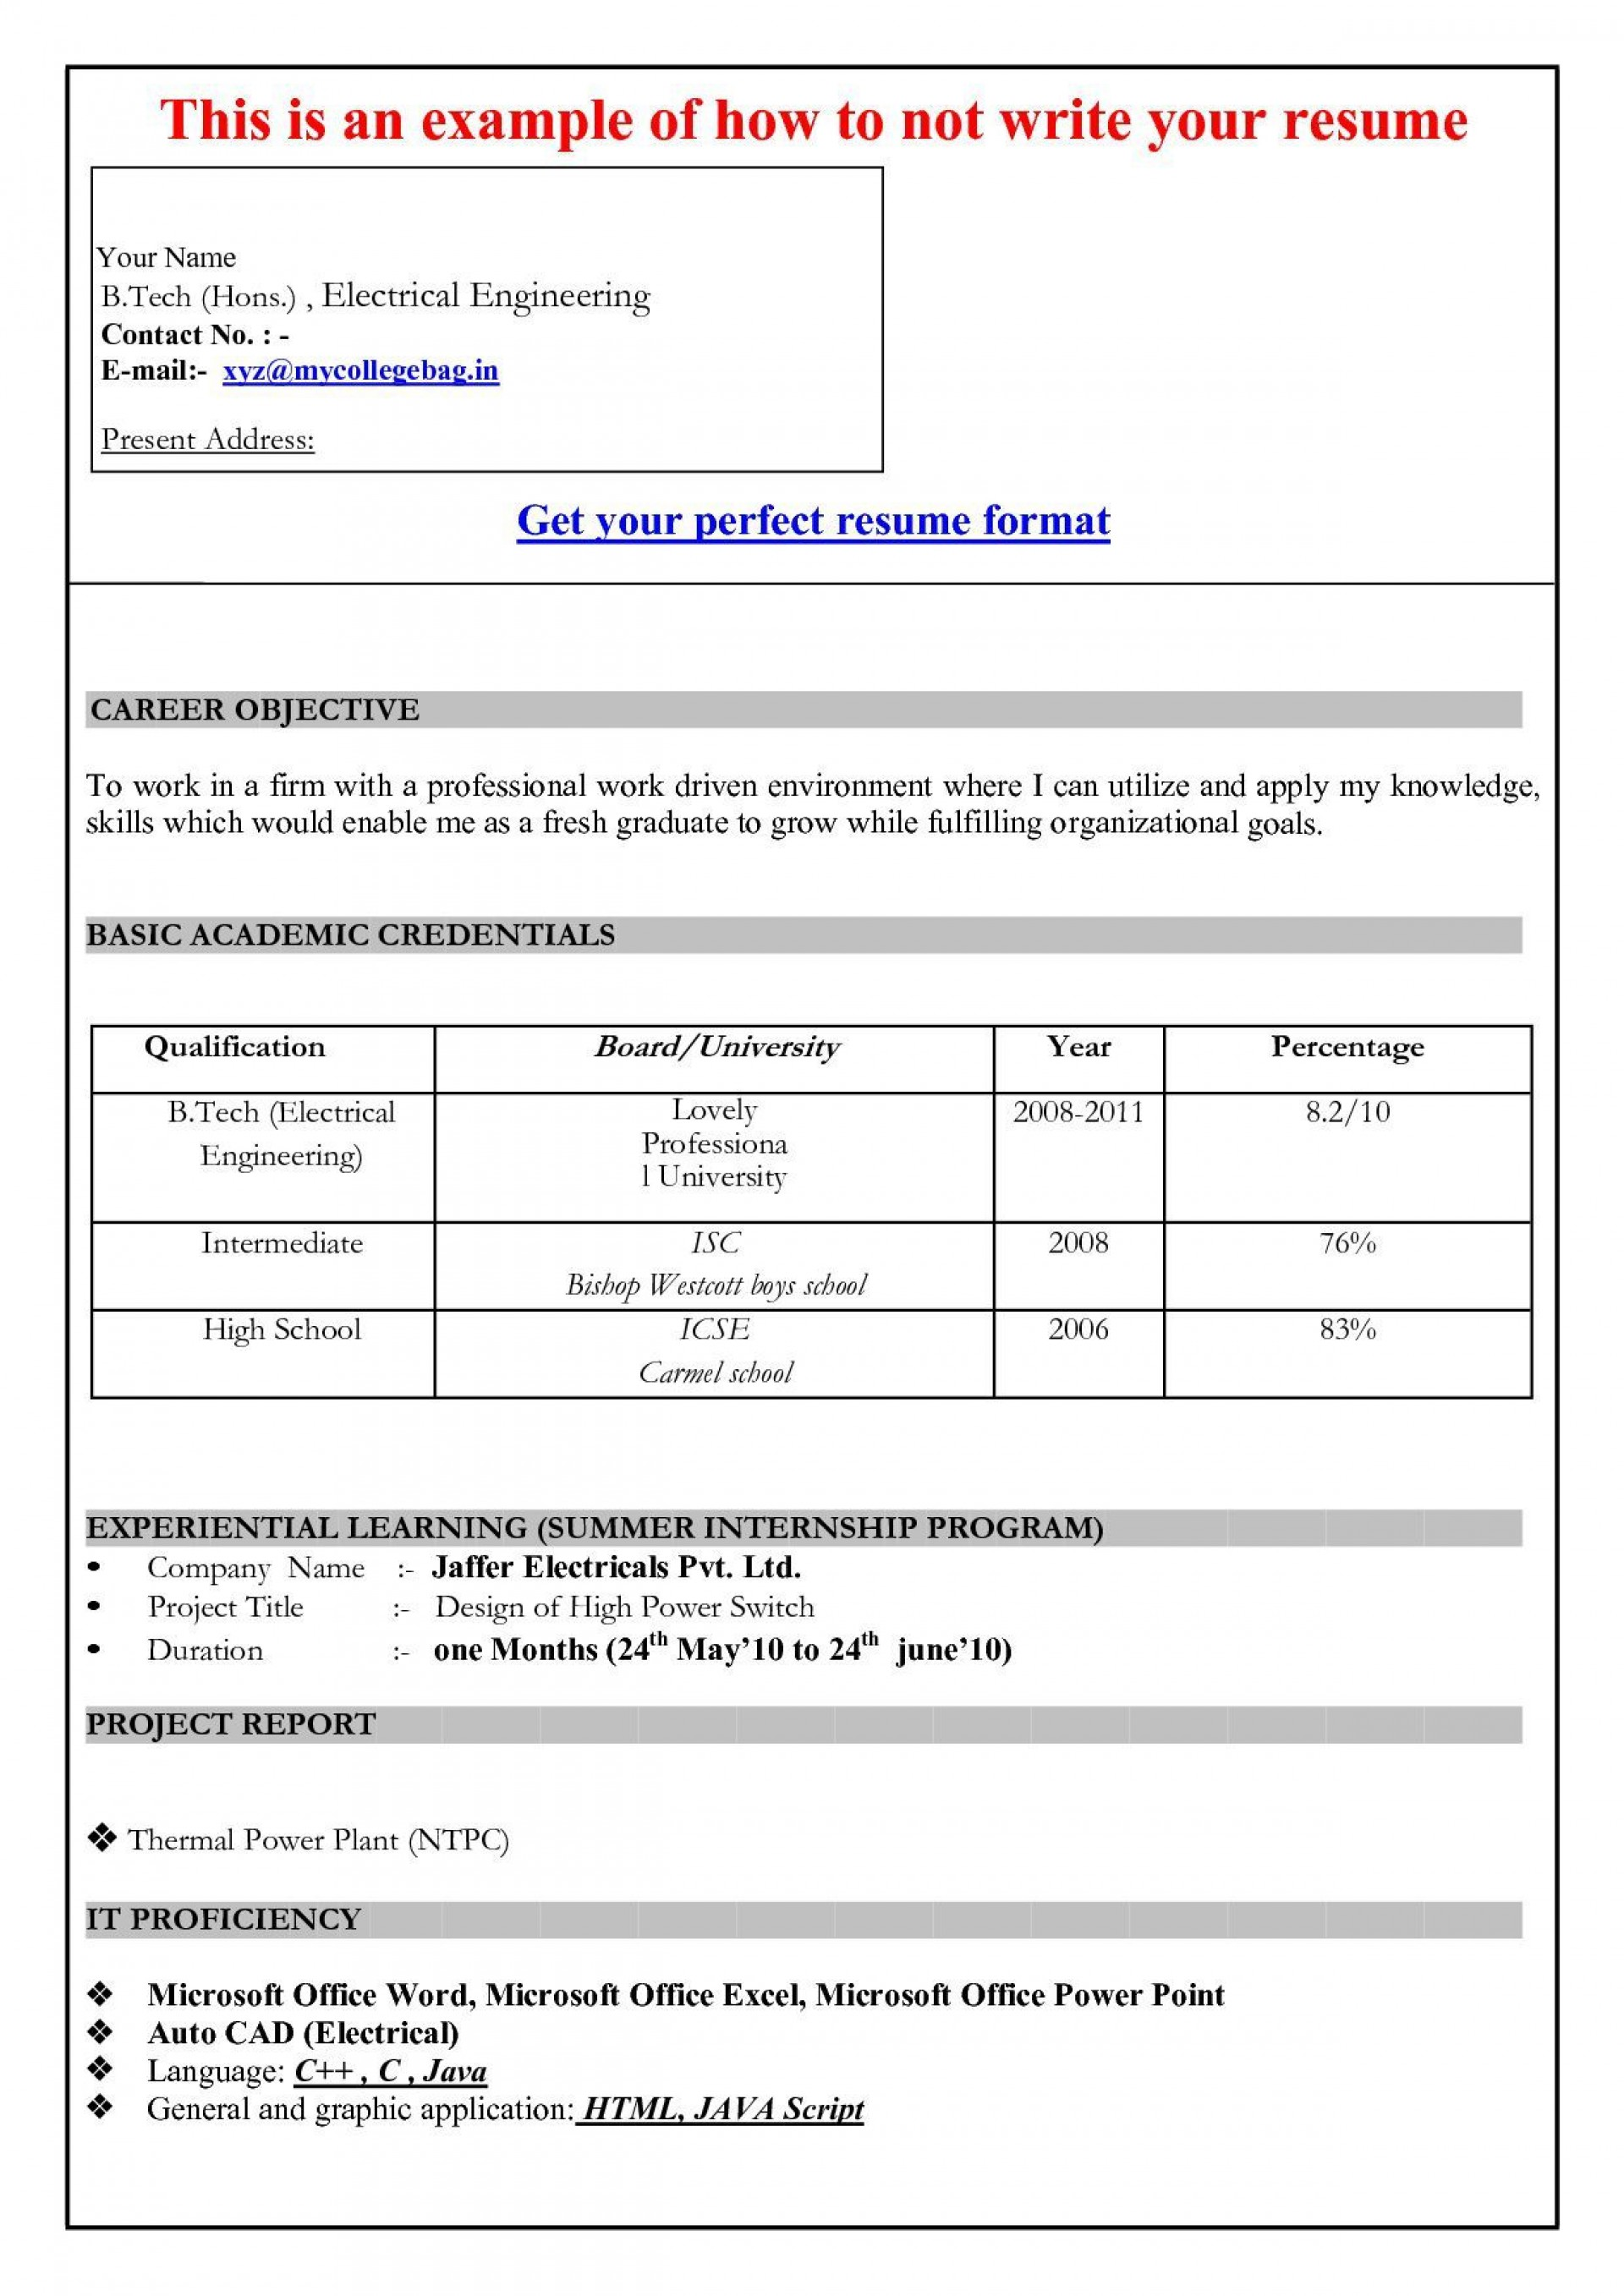 001 Dreaded Resume Sample Template Microsoft Word 2007 1920